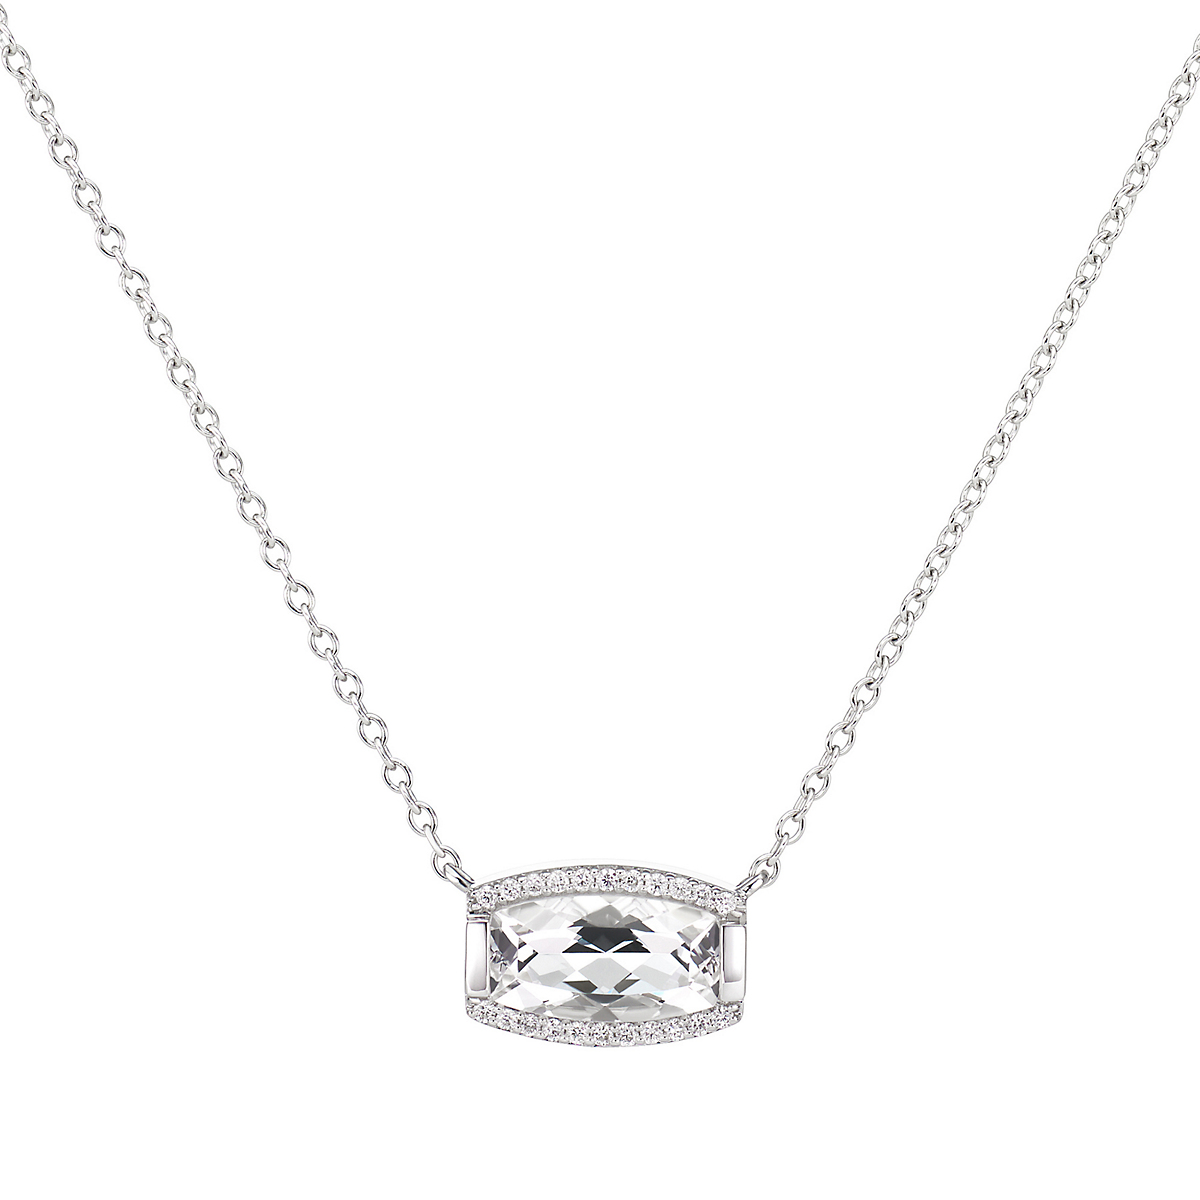 Jane Taylor White Quartz & Pavé Diamond Tonneau Necklace